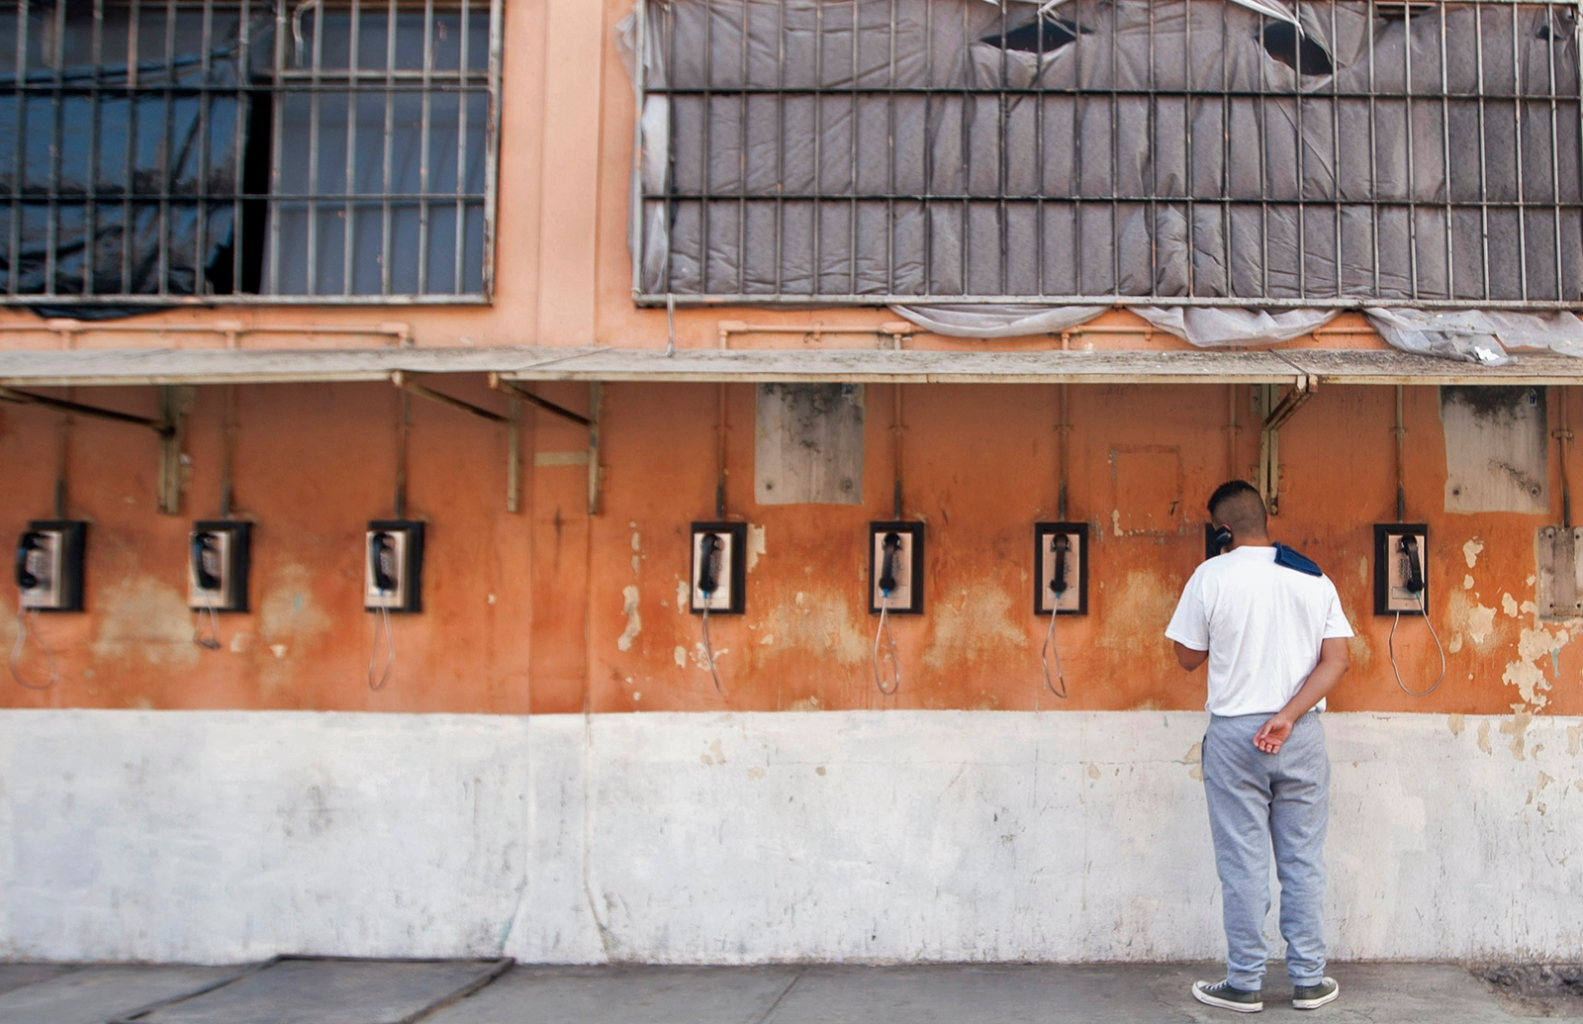 An inmate speaks on the phone on visiting day at the Topo Chico prison in Monterrey, Mexico, on Sept. 21. The prison will close on Sept. 30, and its 2,685 inmates will be transferred to other prisons in the city. JULIO CESAR AGUILAR/AFP/Getty Images